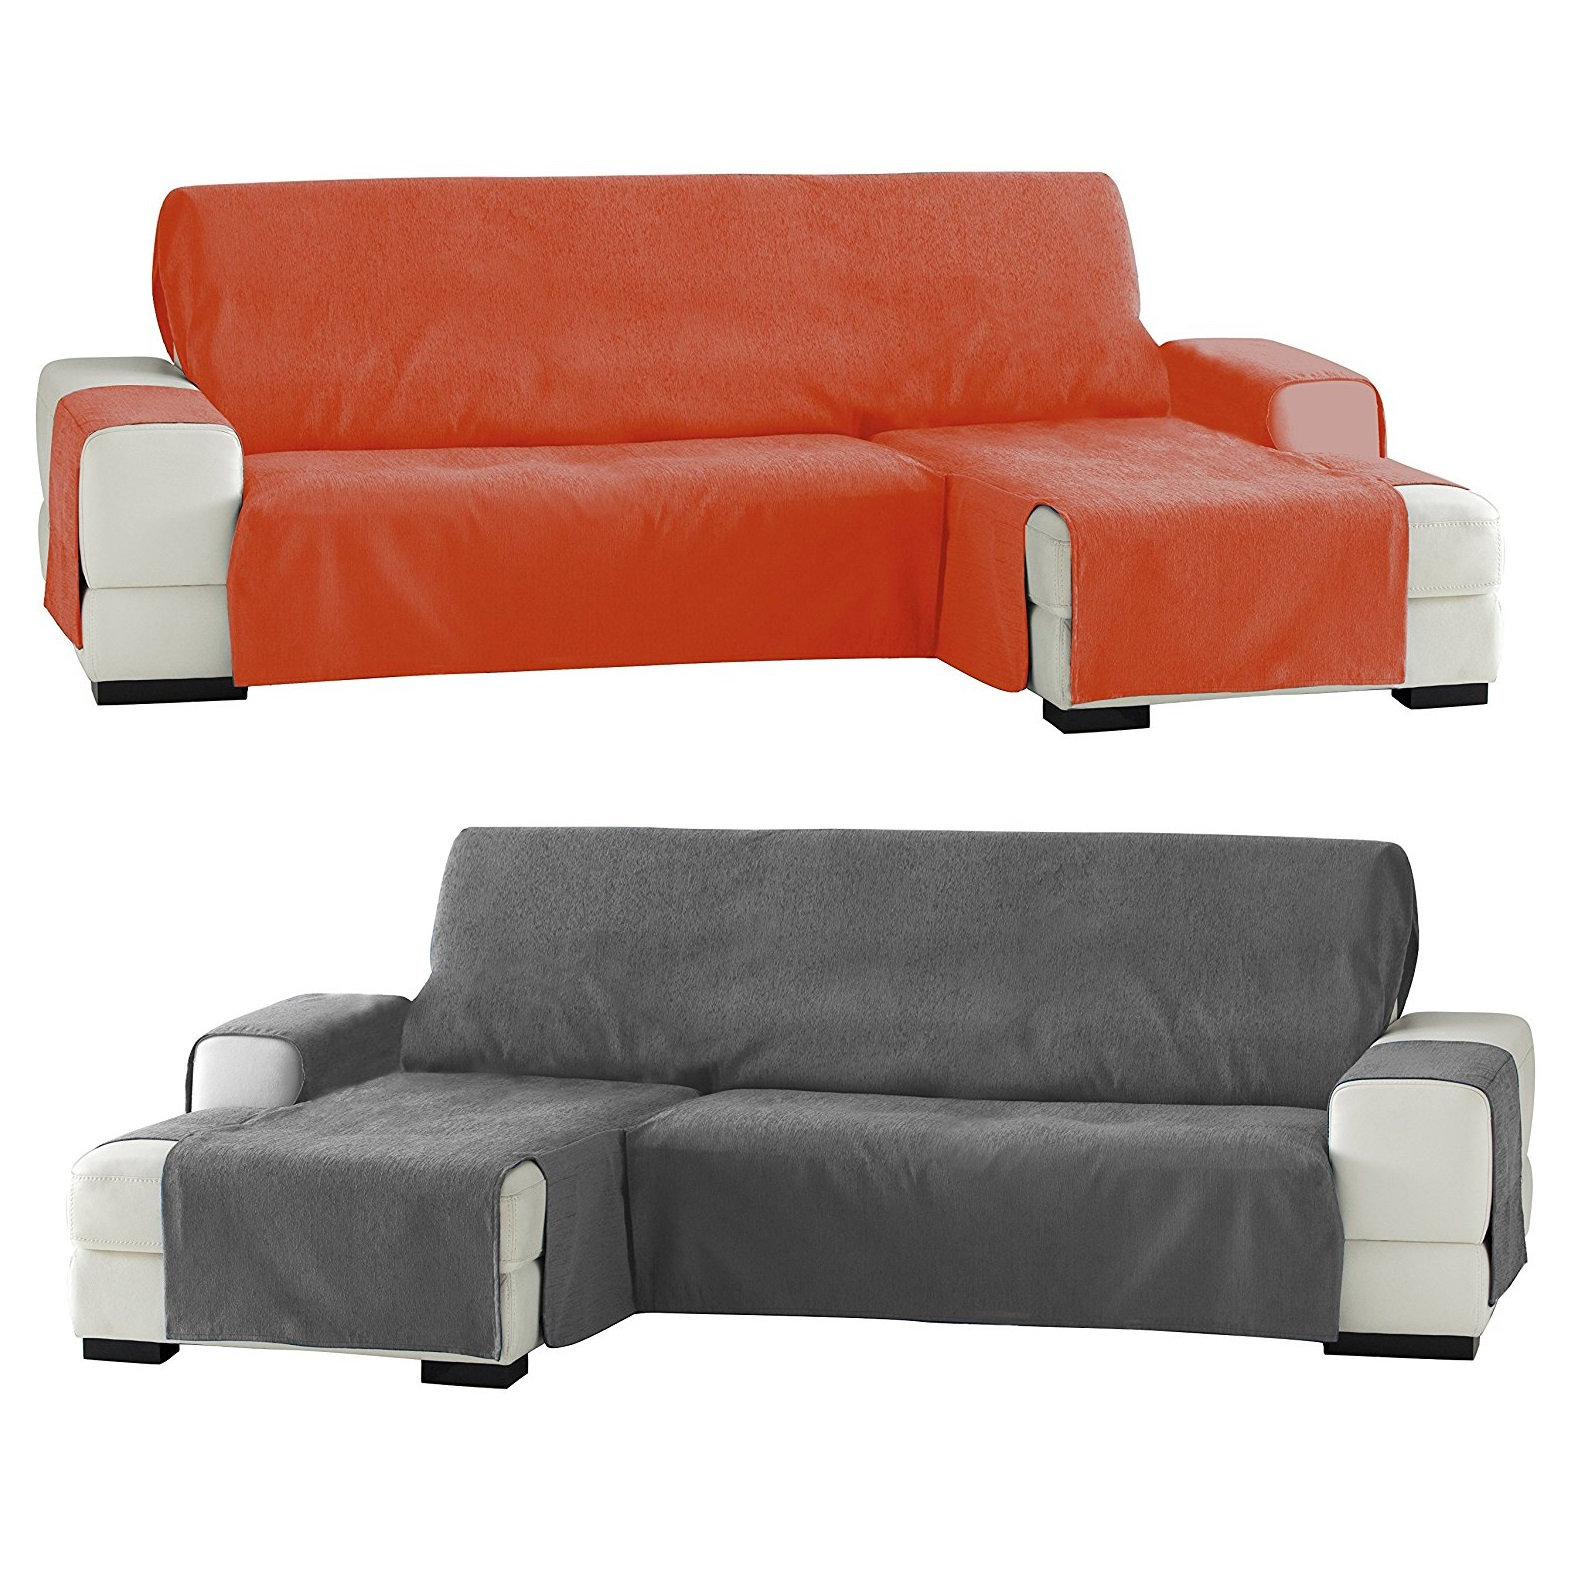 Brilliant Funda Para Sofa Chaise Longue Guia De Compra Y Analisis Pabps2019 Chair Design Images Pabps2019Com